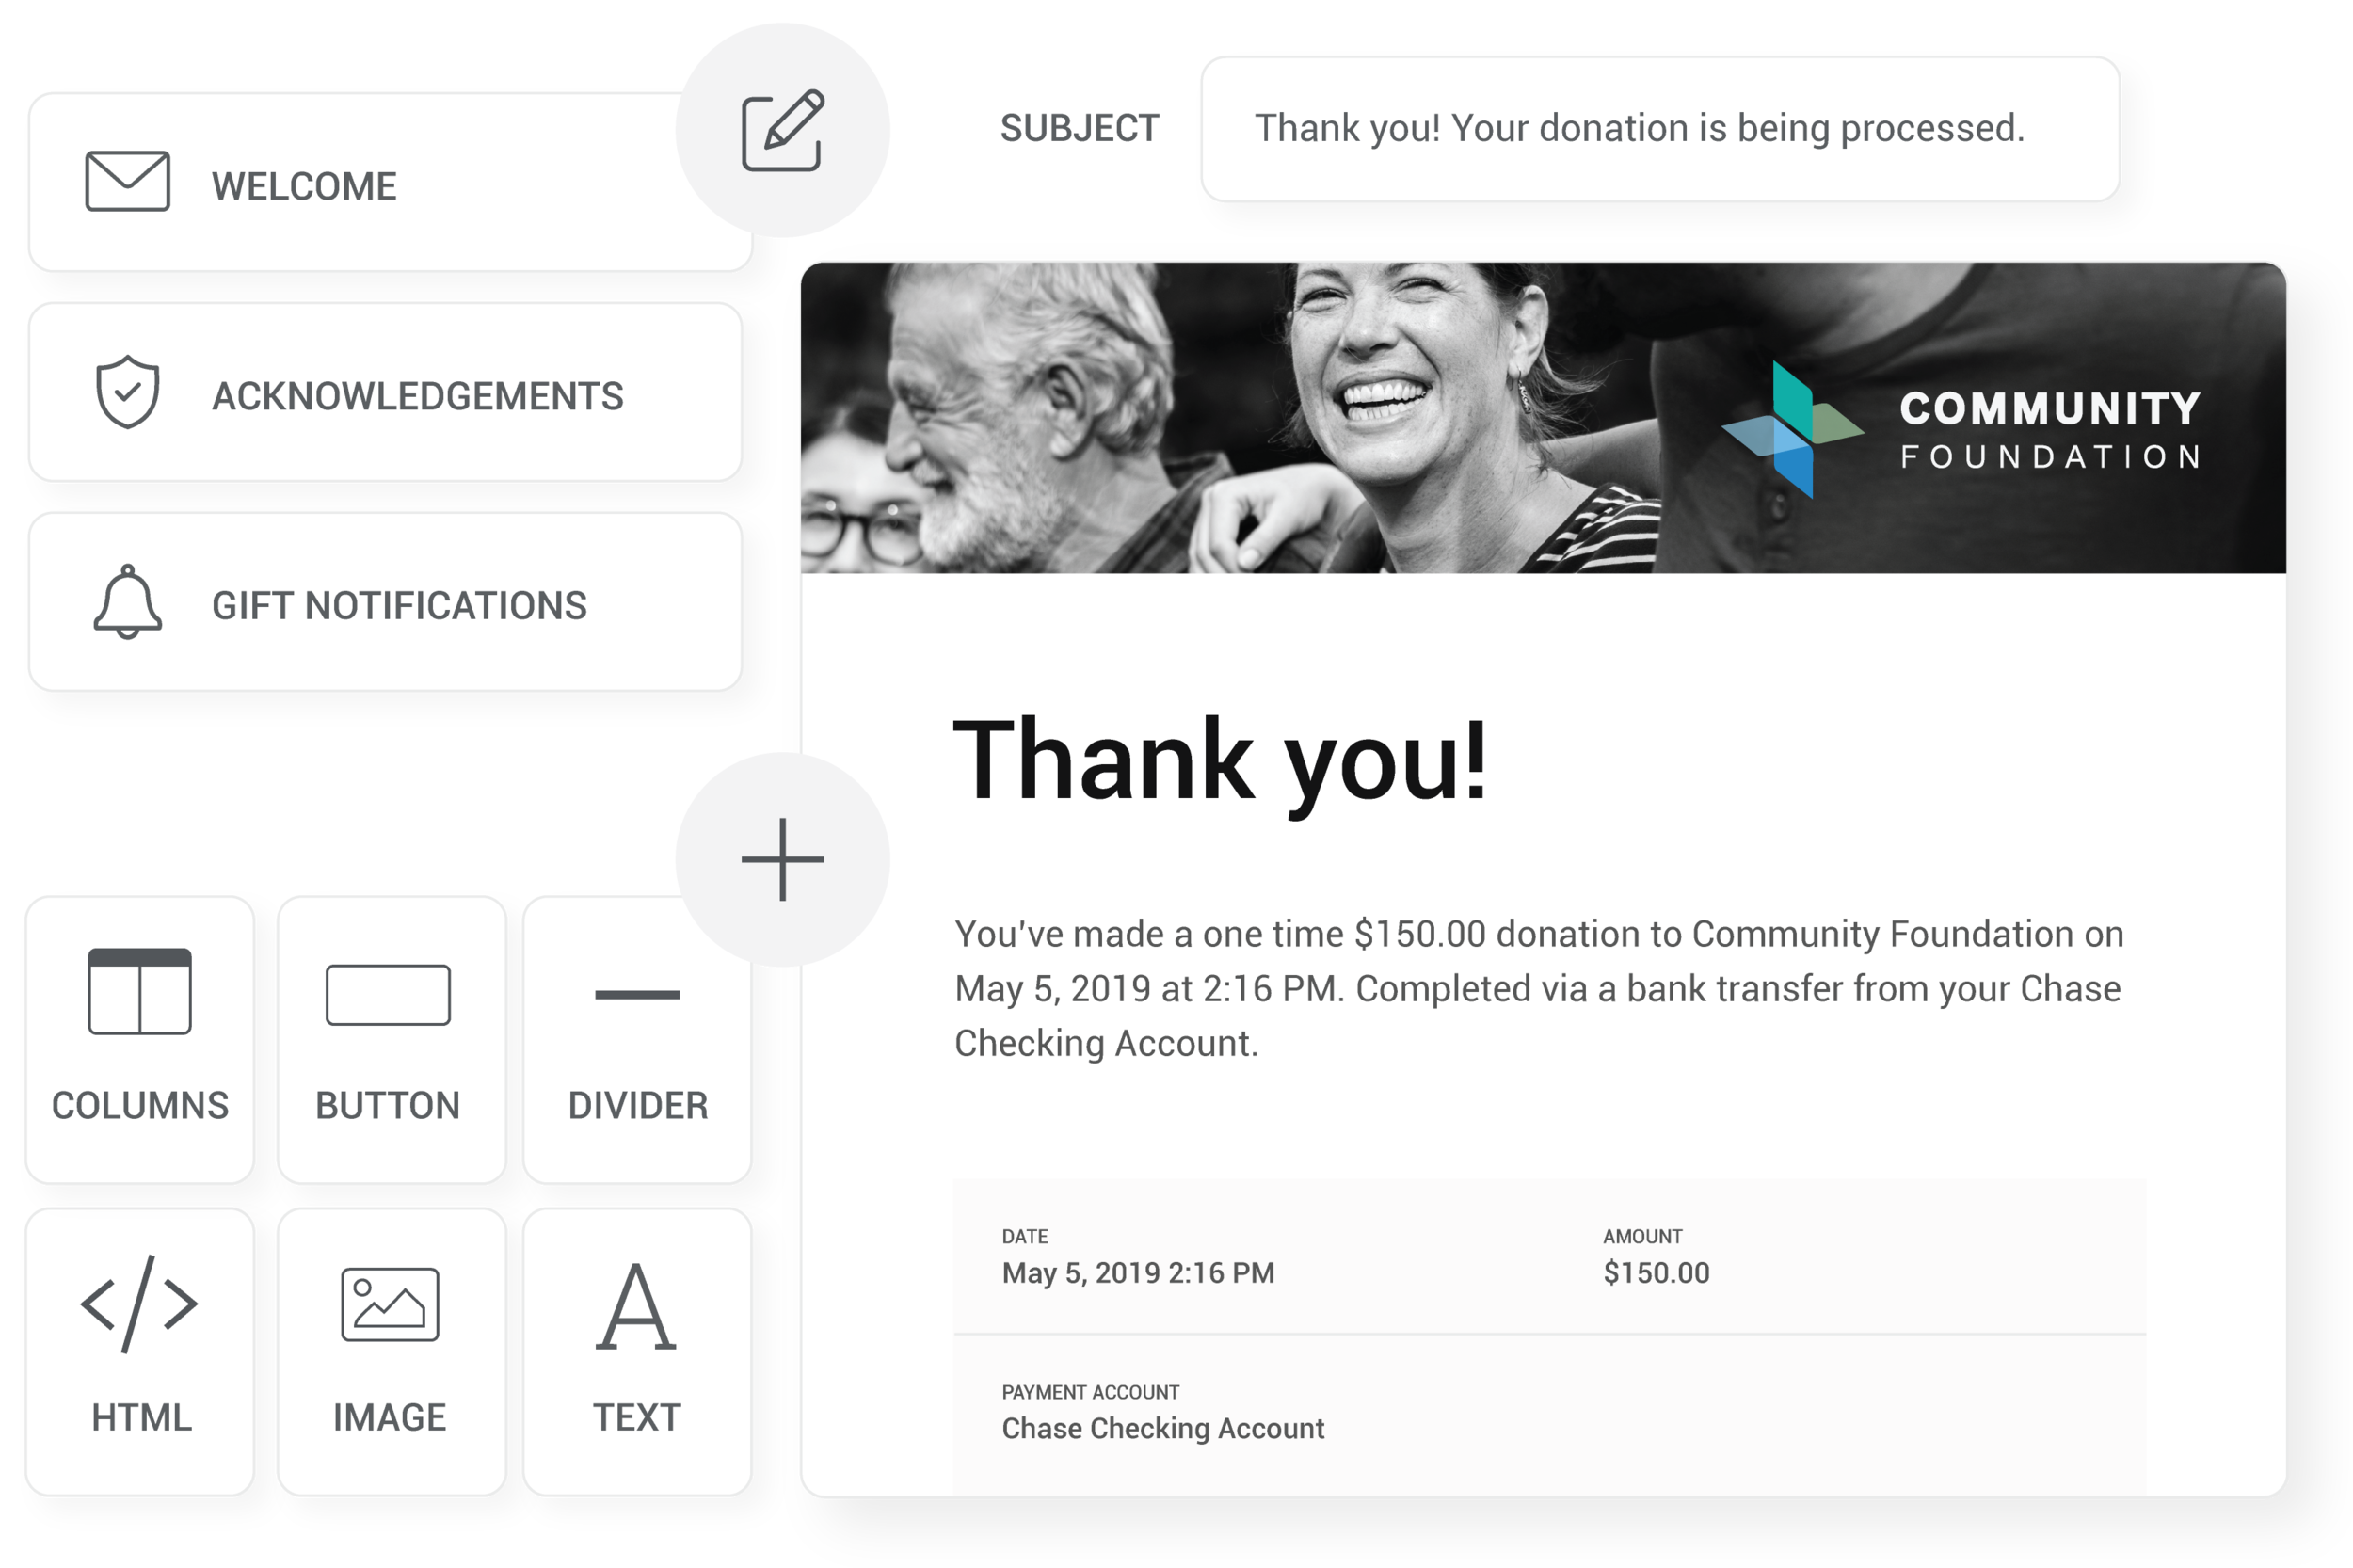 Outreach Designed to Save You Time - Your donors will automatically receive welcome, acknowledgement and gift notification emails. Customize the look and message in no time.